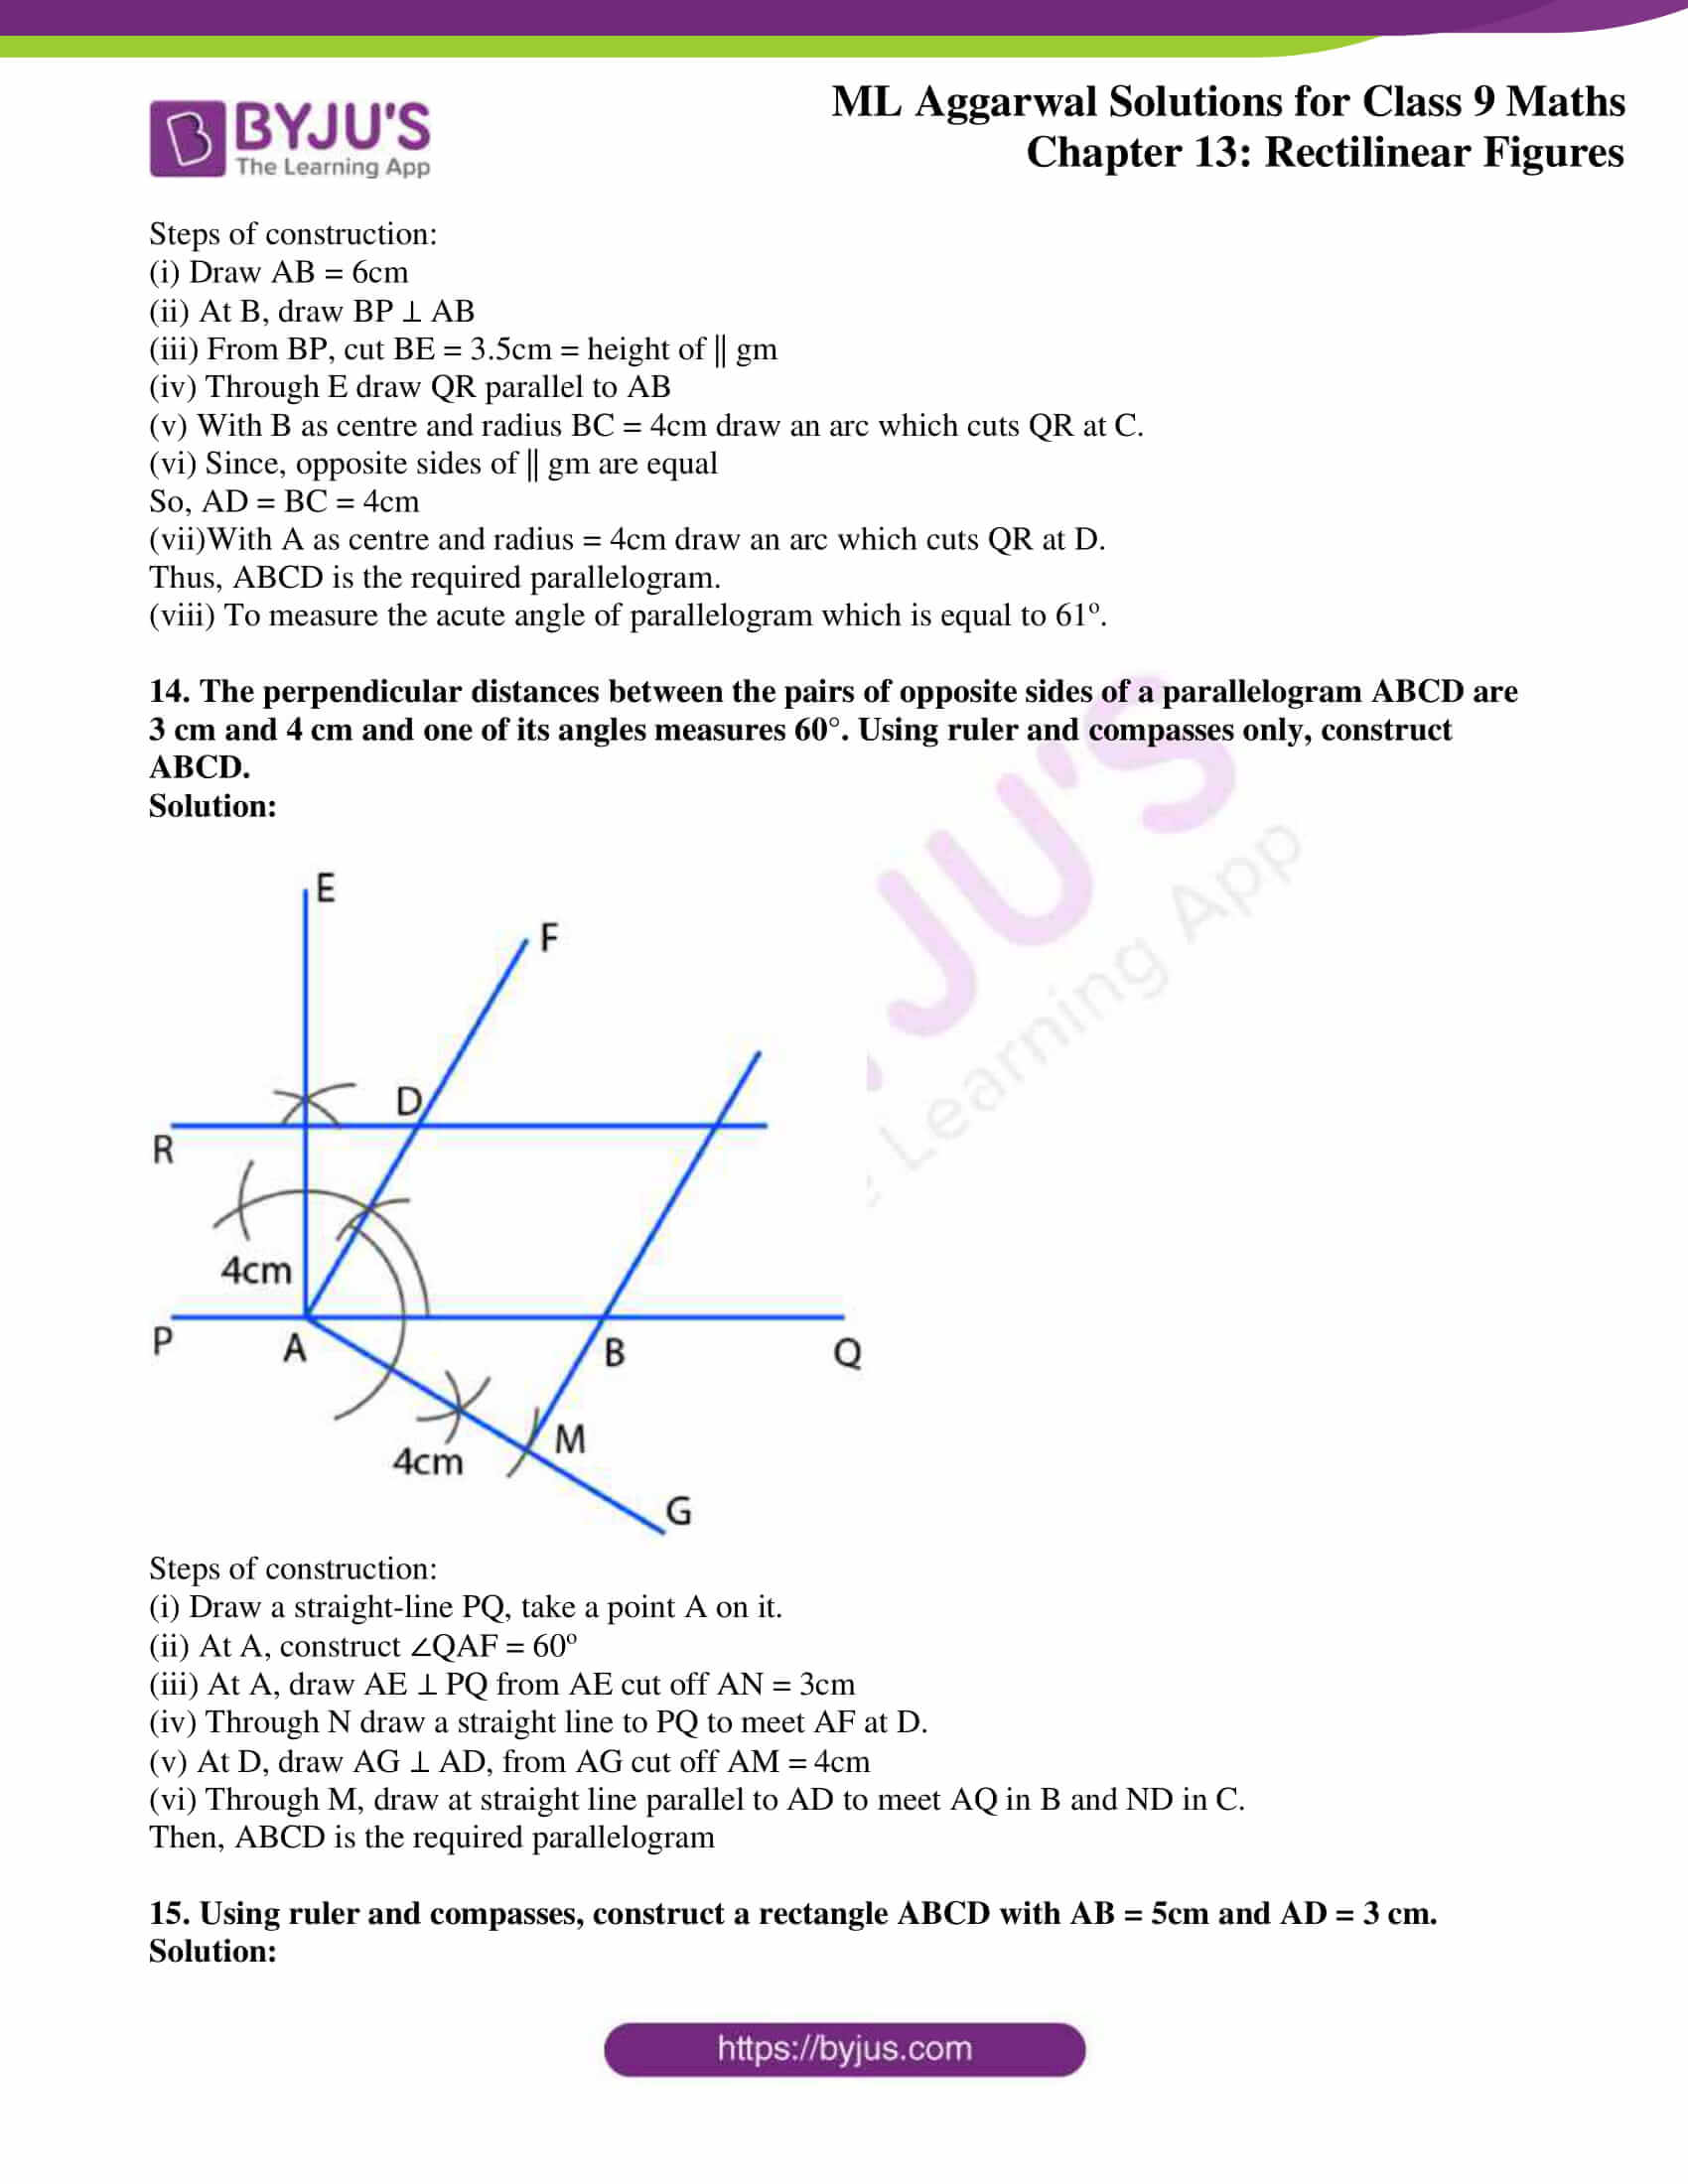 ml aggarwal solutions for class 9 maths chapter 13 32